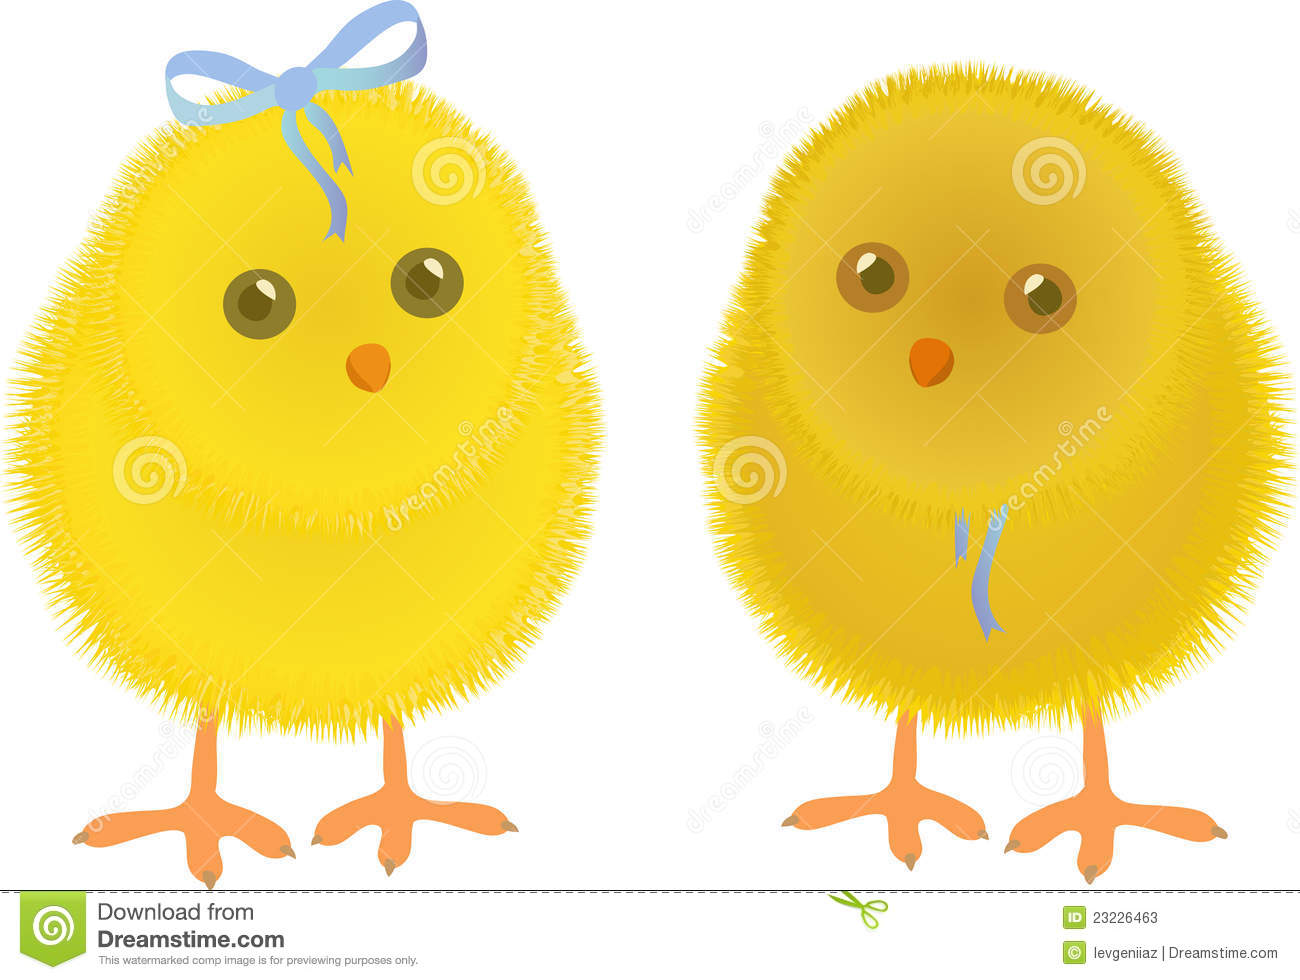 Illustration with two chicken isolated on white background.